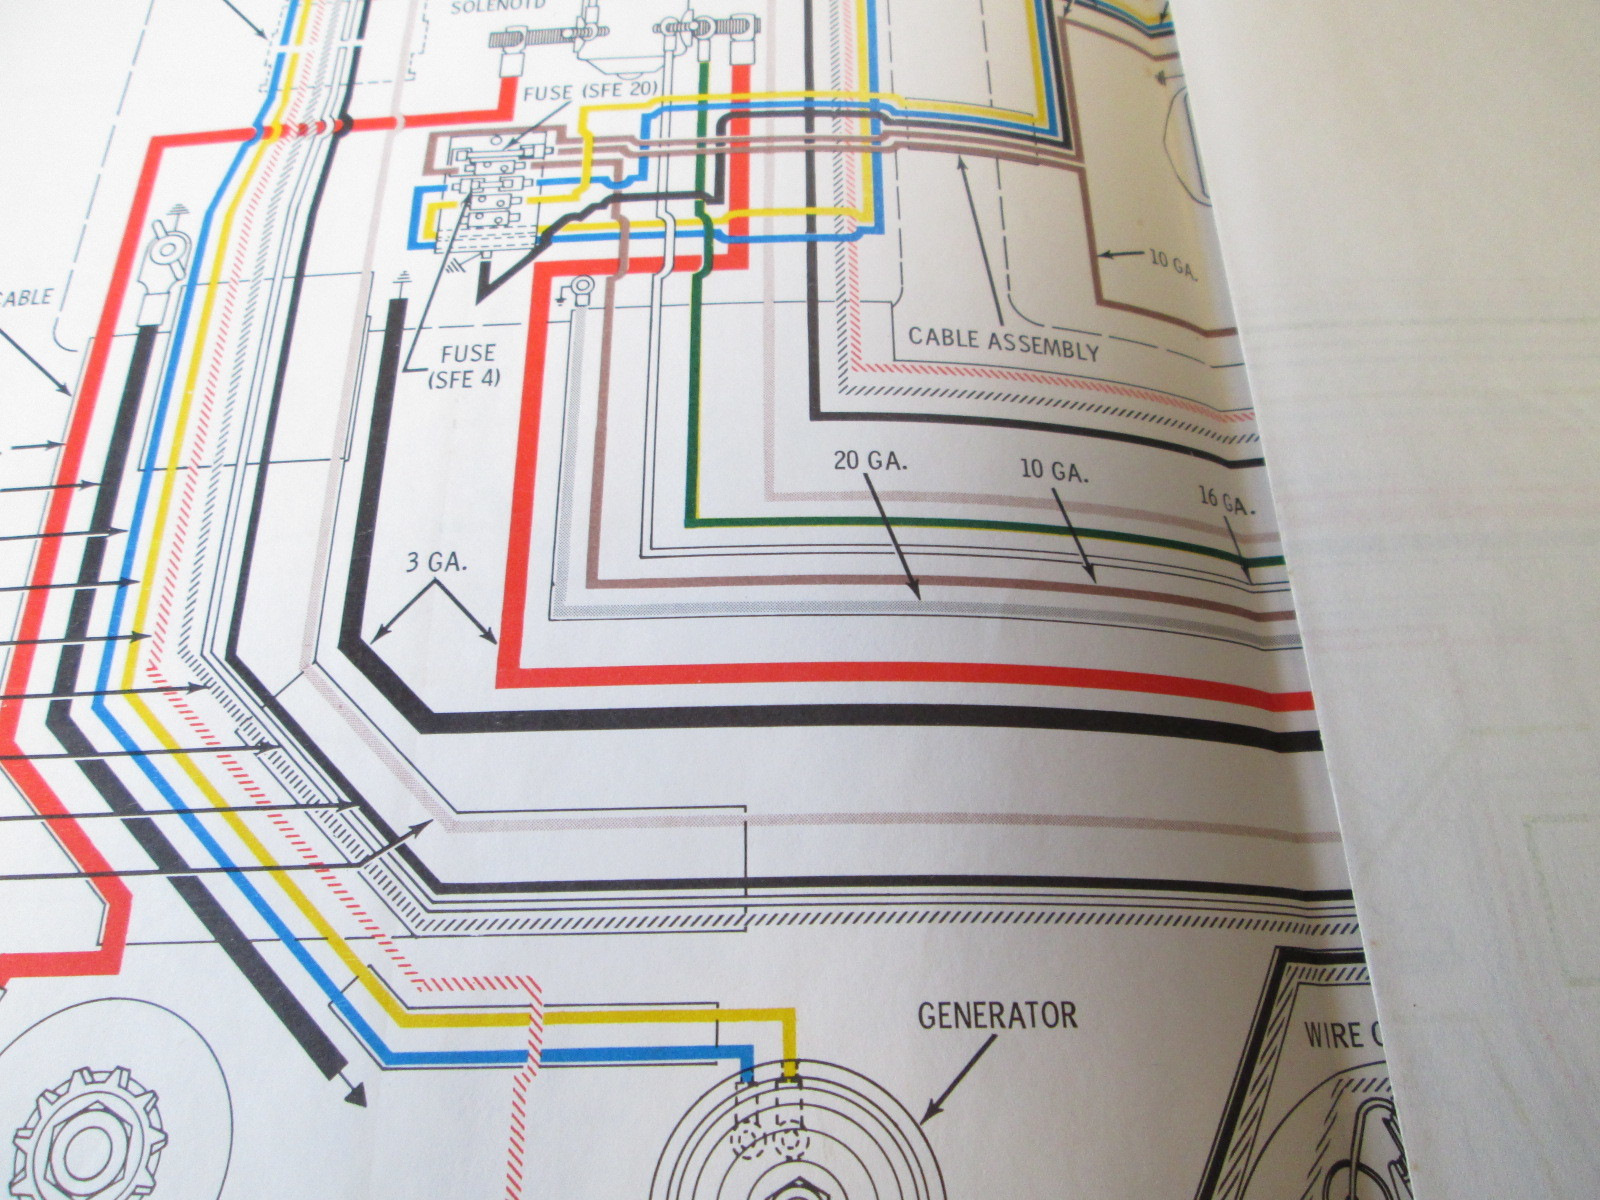 Mercury 850 Wiring Diagram Schematics Diagrams Volvo Electrical For A Schematic 85 Hp 1975